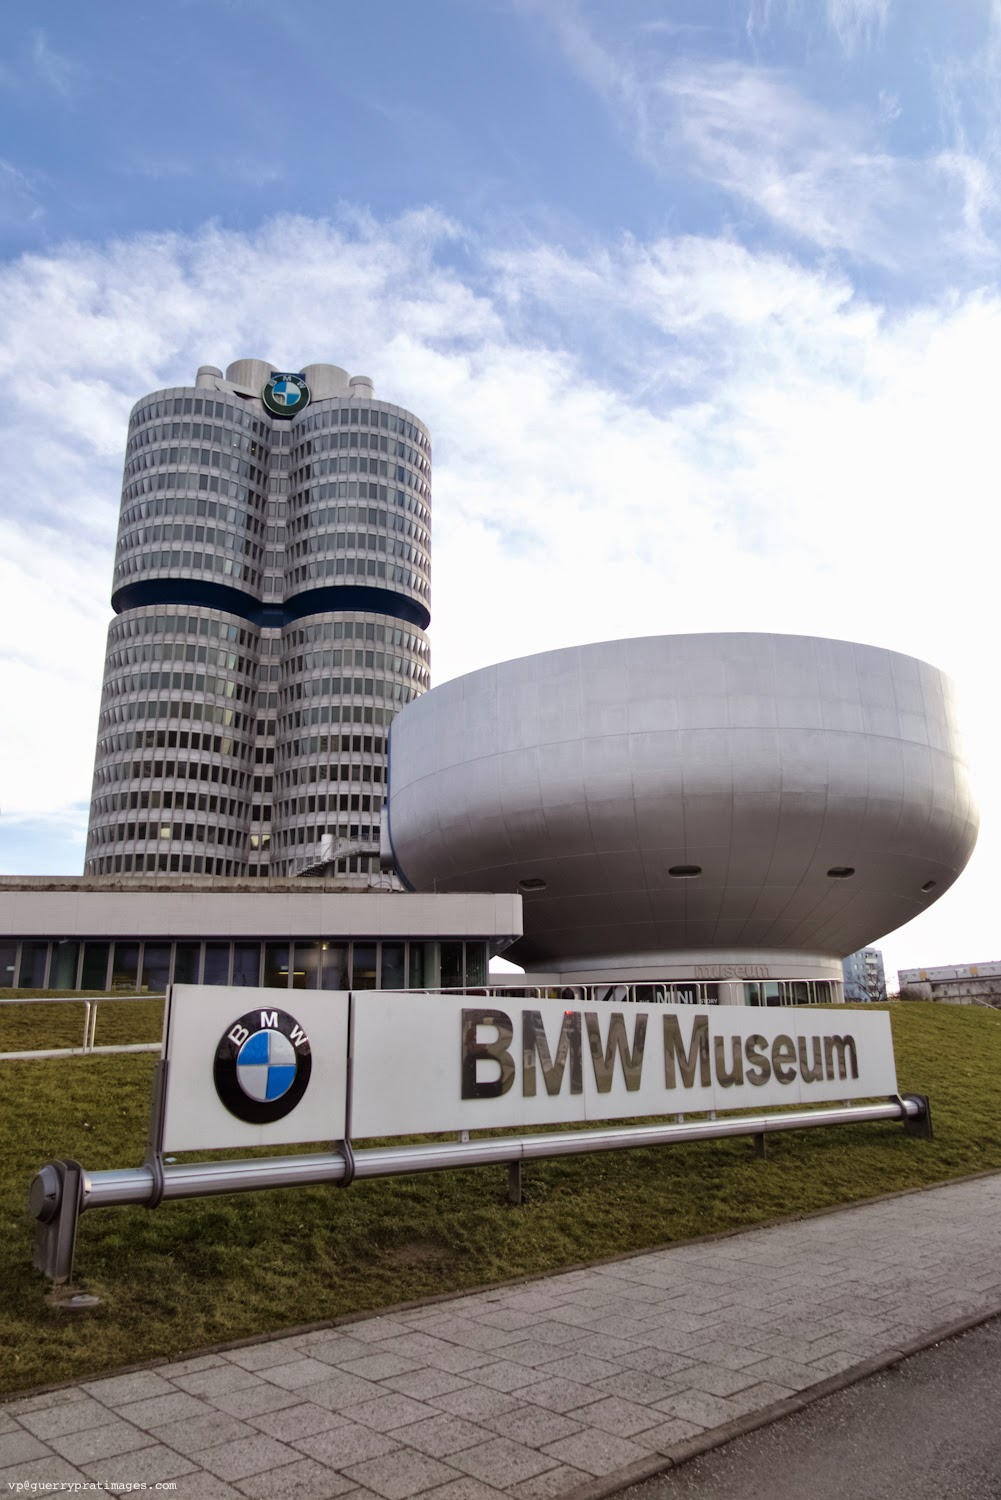 southsiders Two days in Munich The BMW Museum